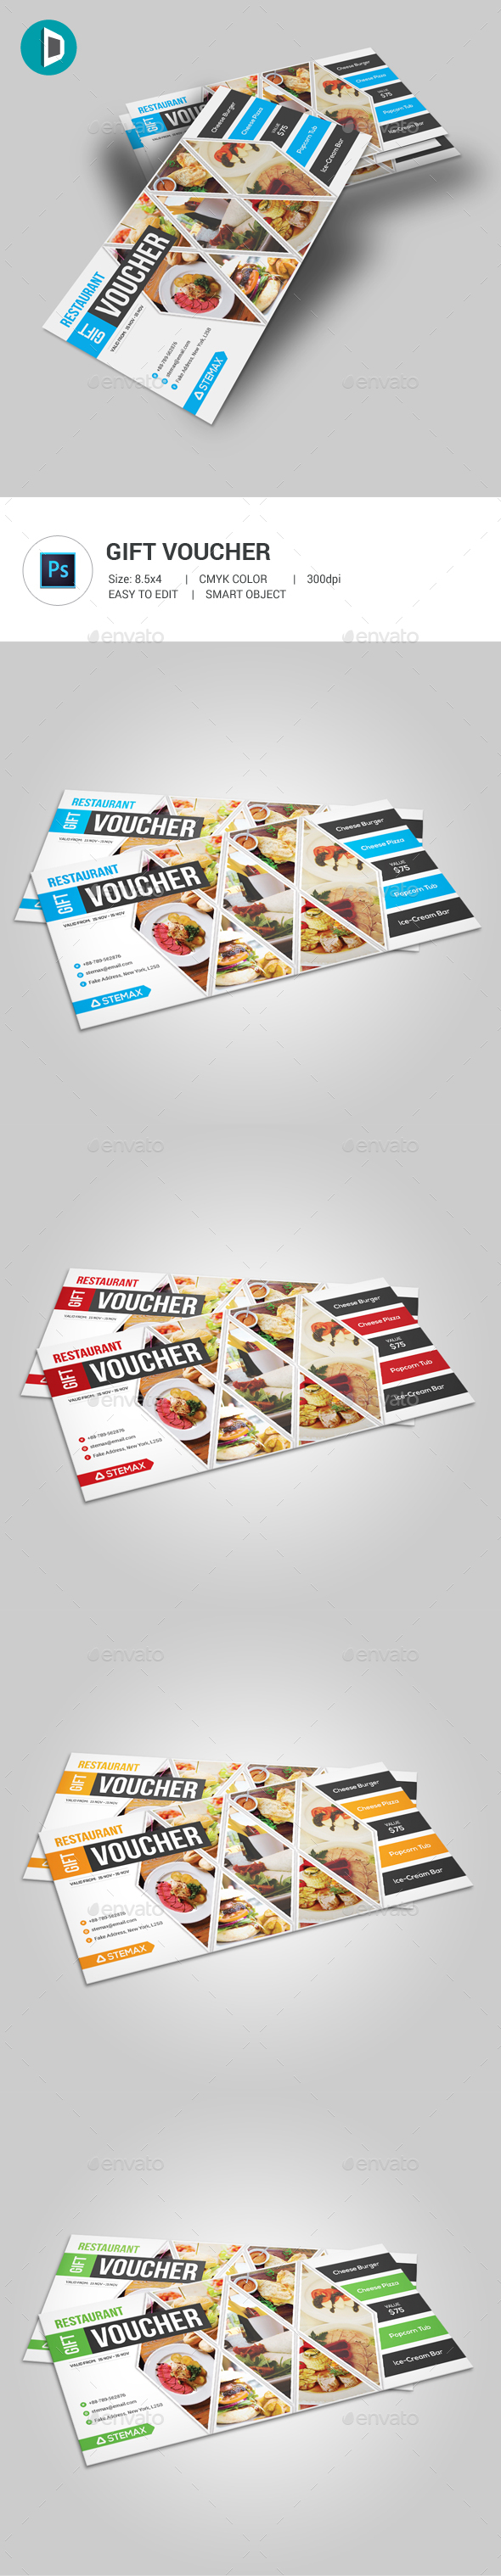 Restaurant Gift Voucher - Loyalty Cards Cards & Invites